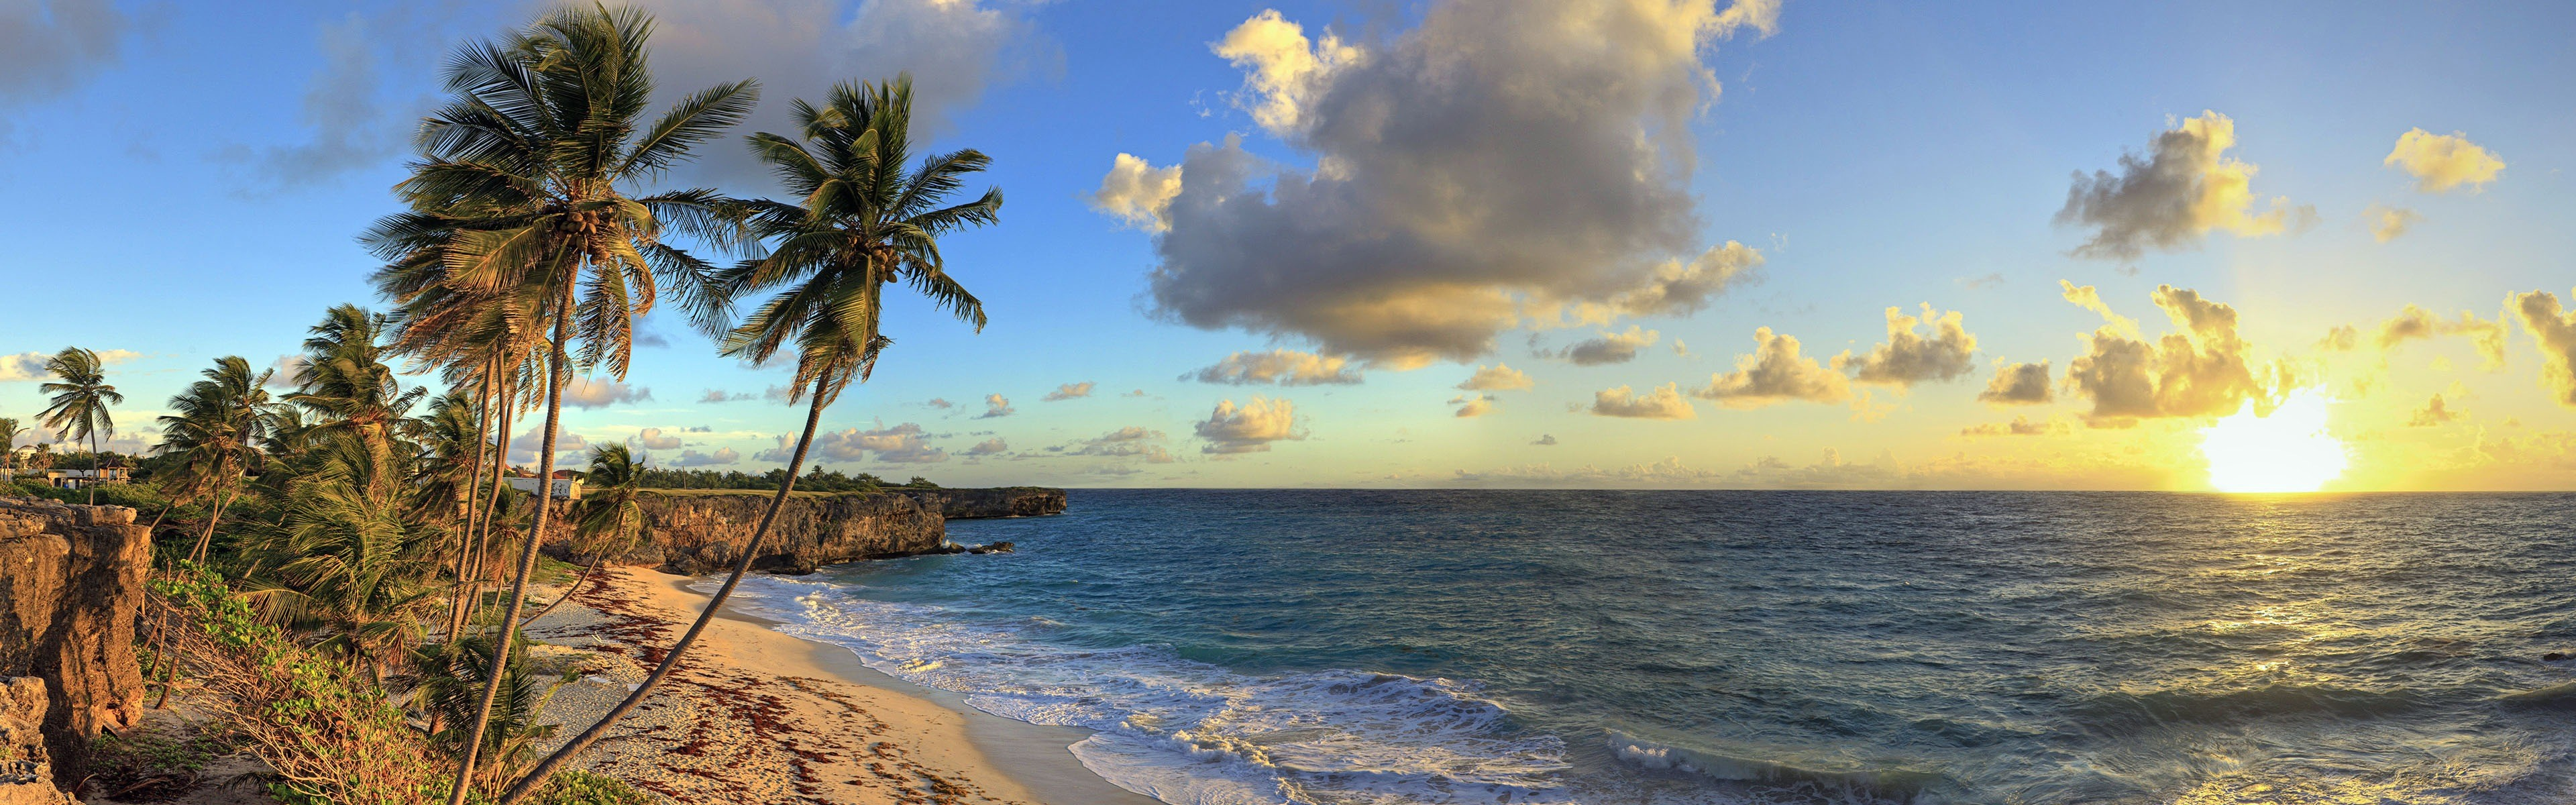 Panoramic backgrounds 39 images 3840x1200 wallpaper panoramic beach background download pic wpd001376 voltagebd Images